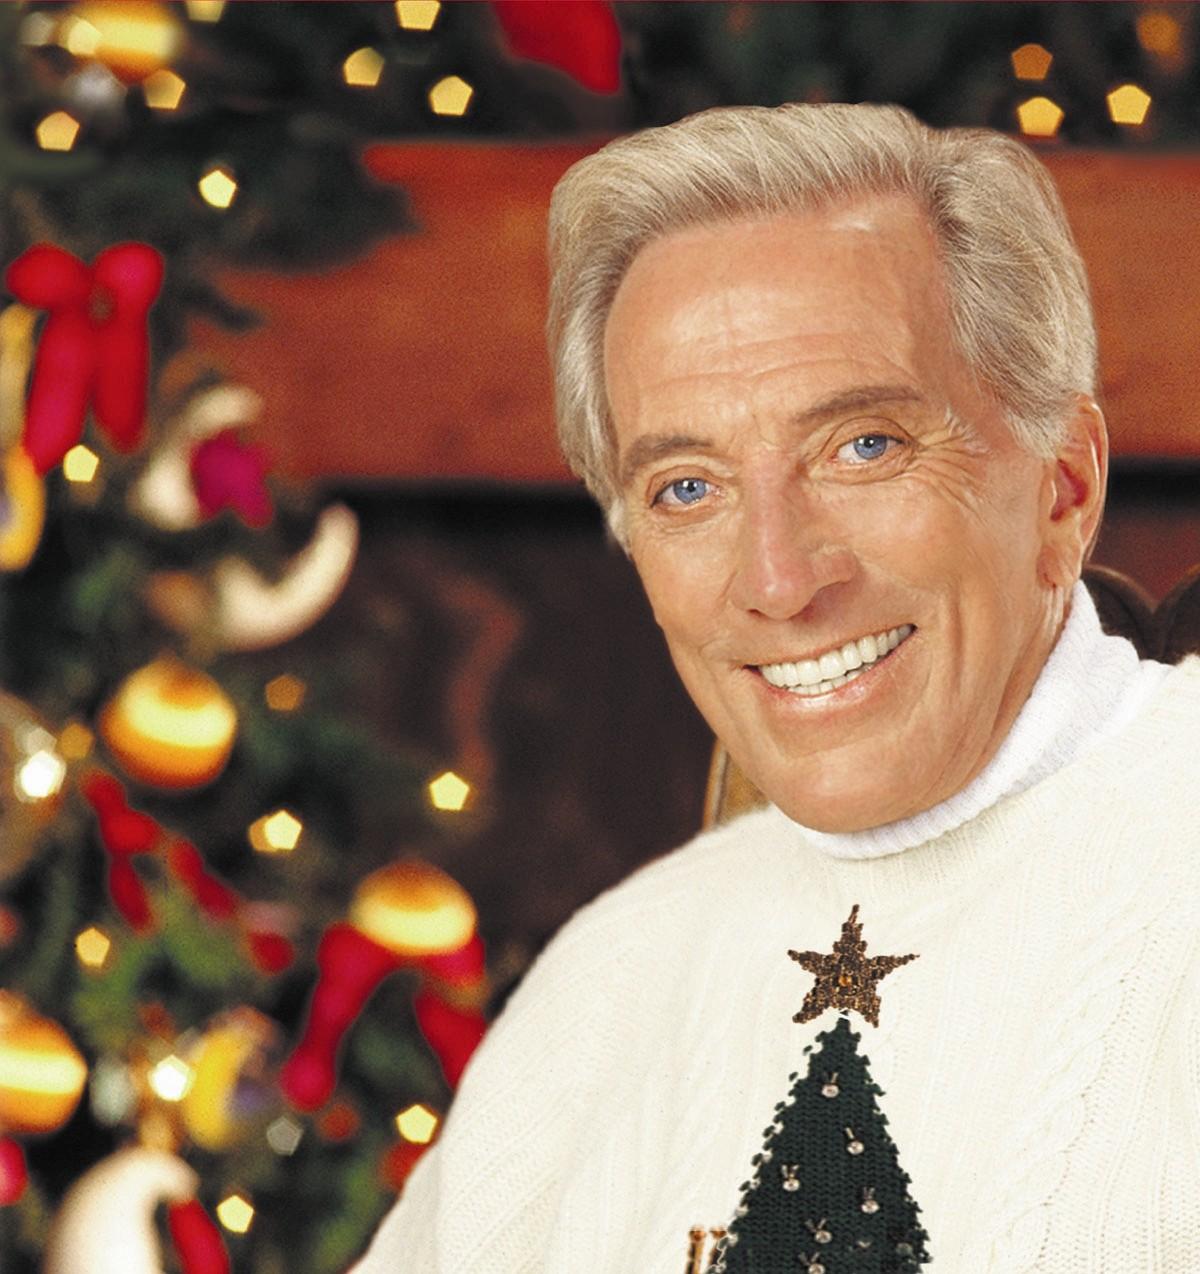 Our Genealogist Loves Christmas and Crooner Andy Williams